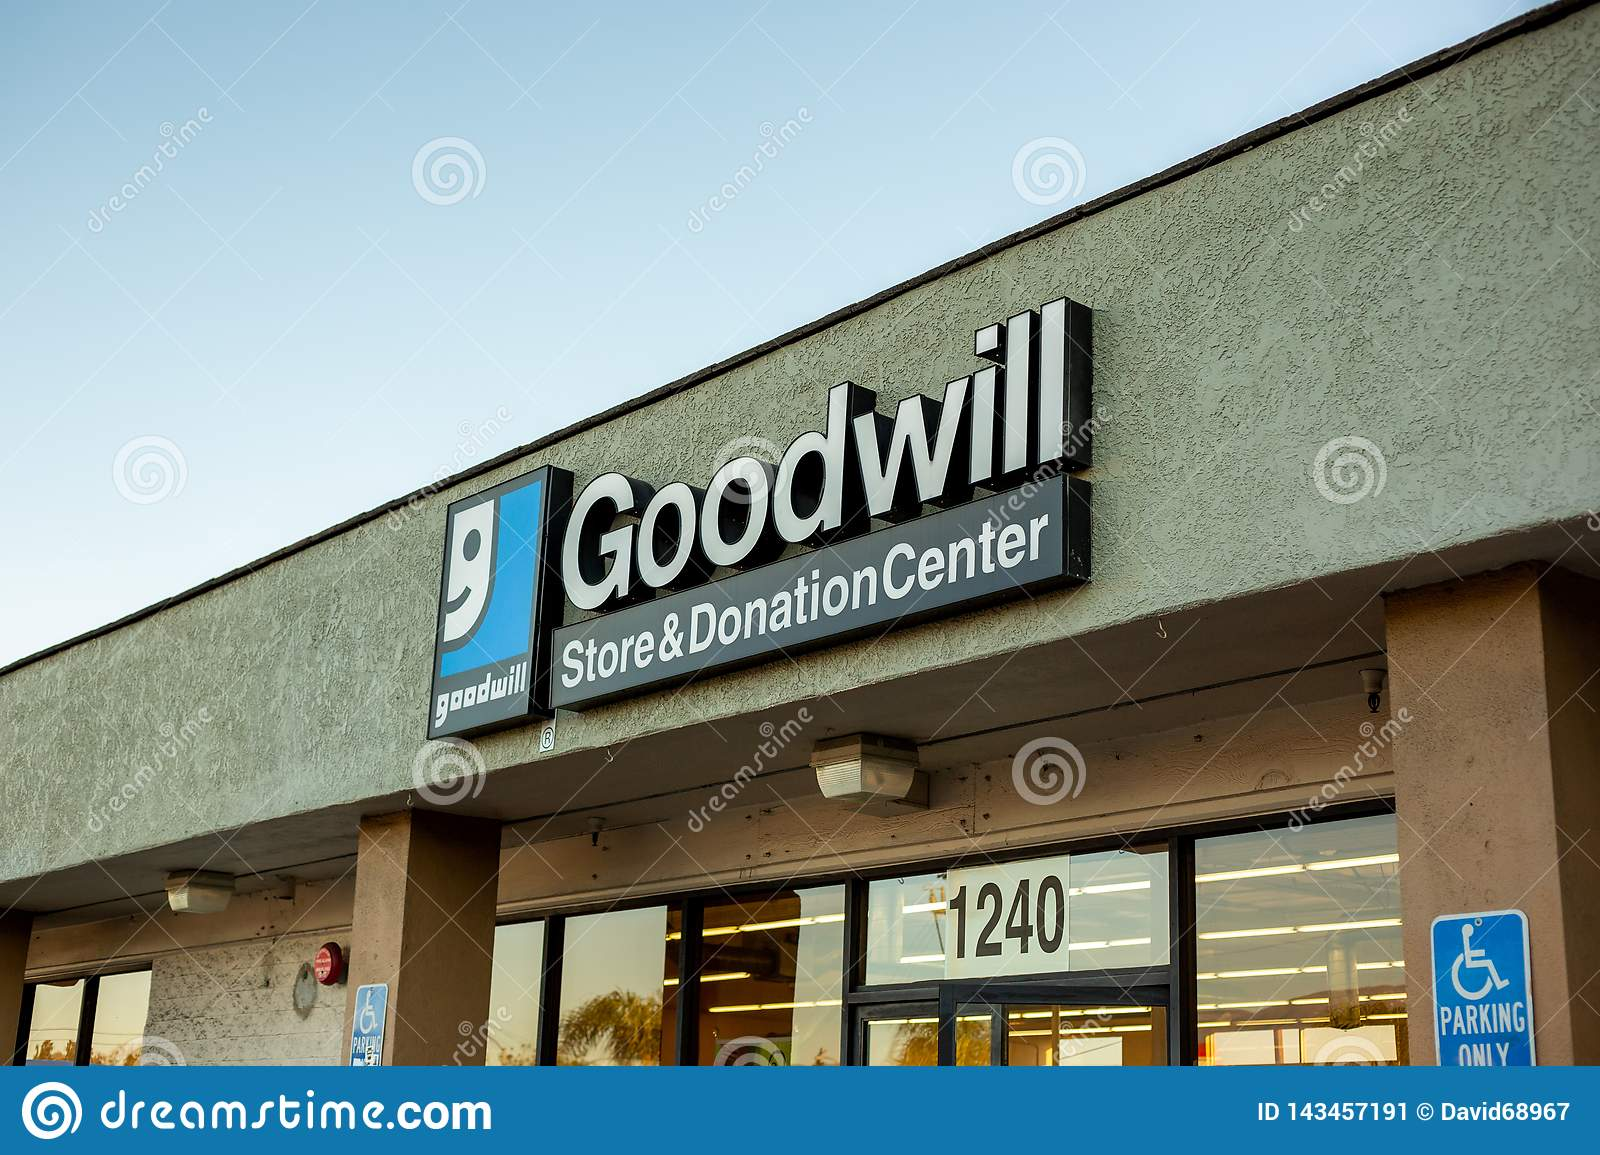 Store front sign for Goodwill